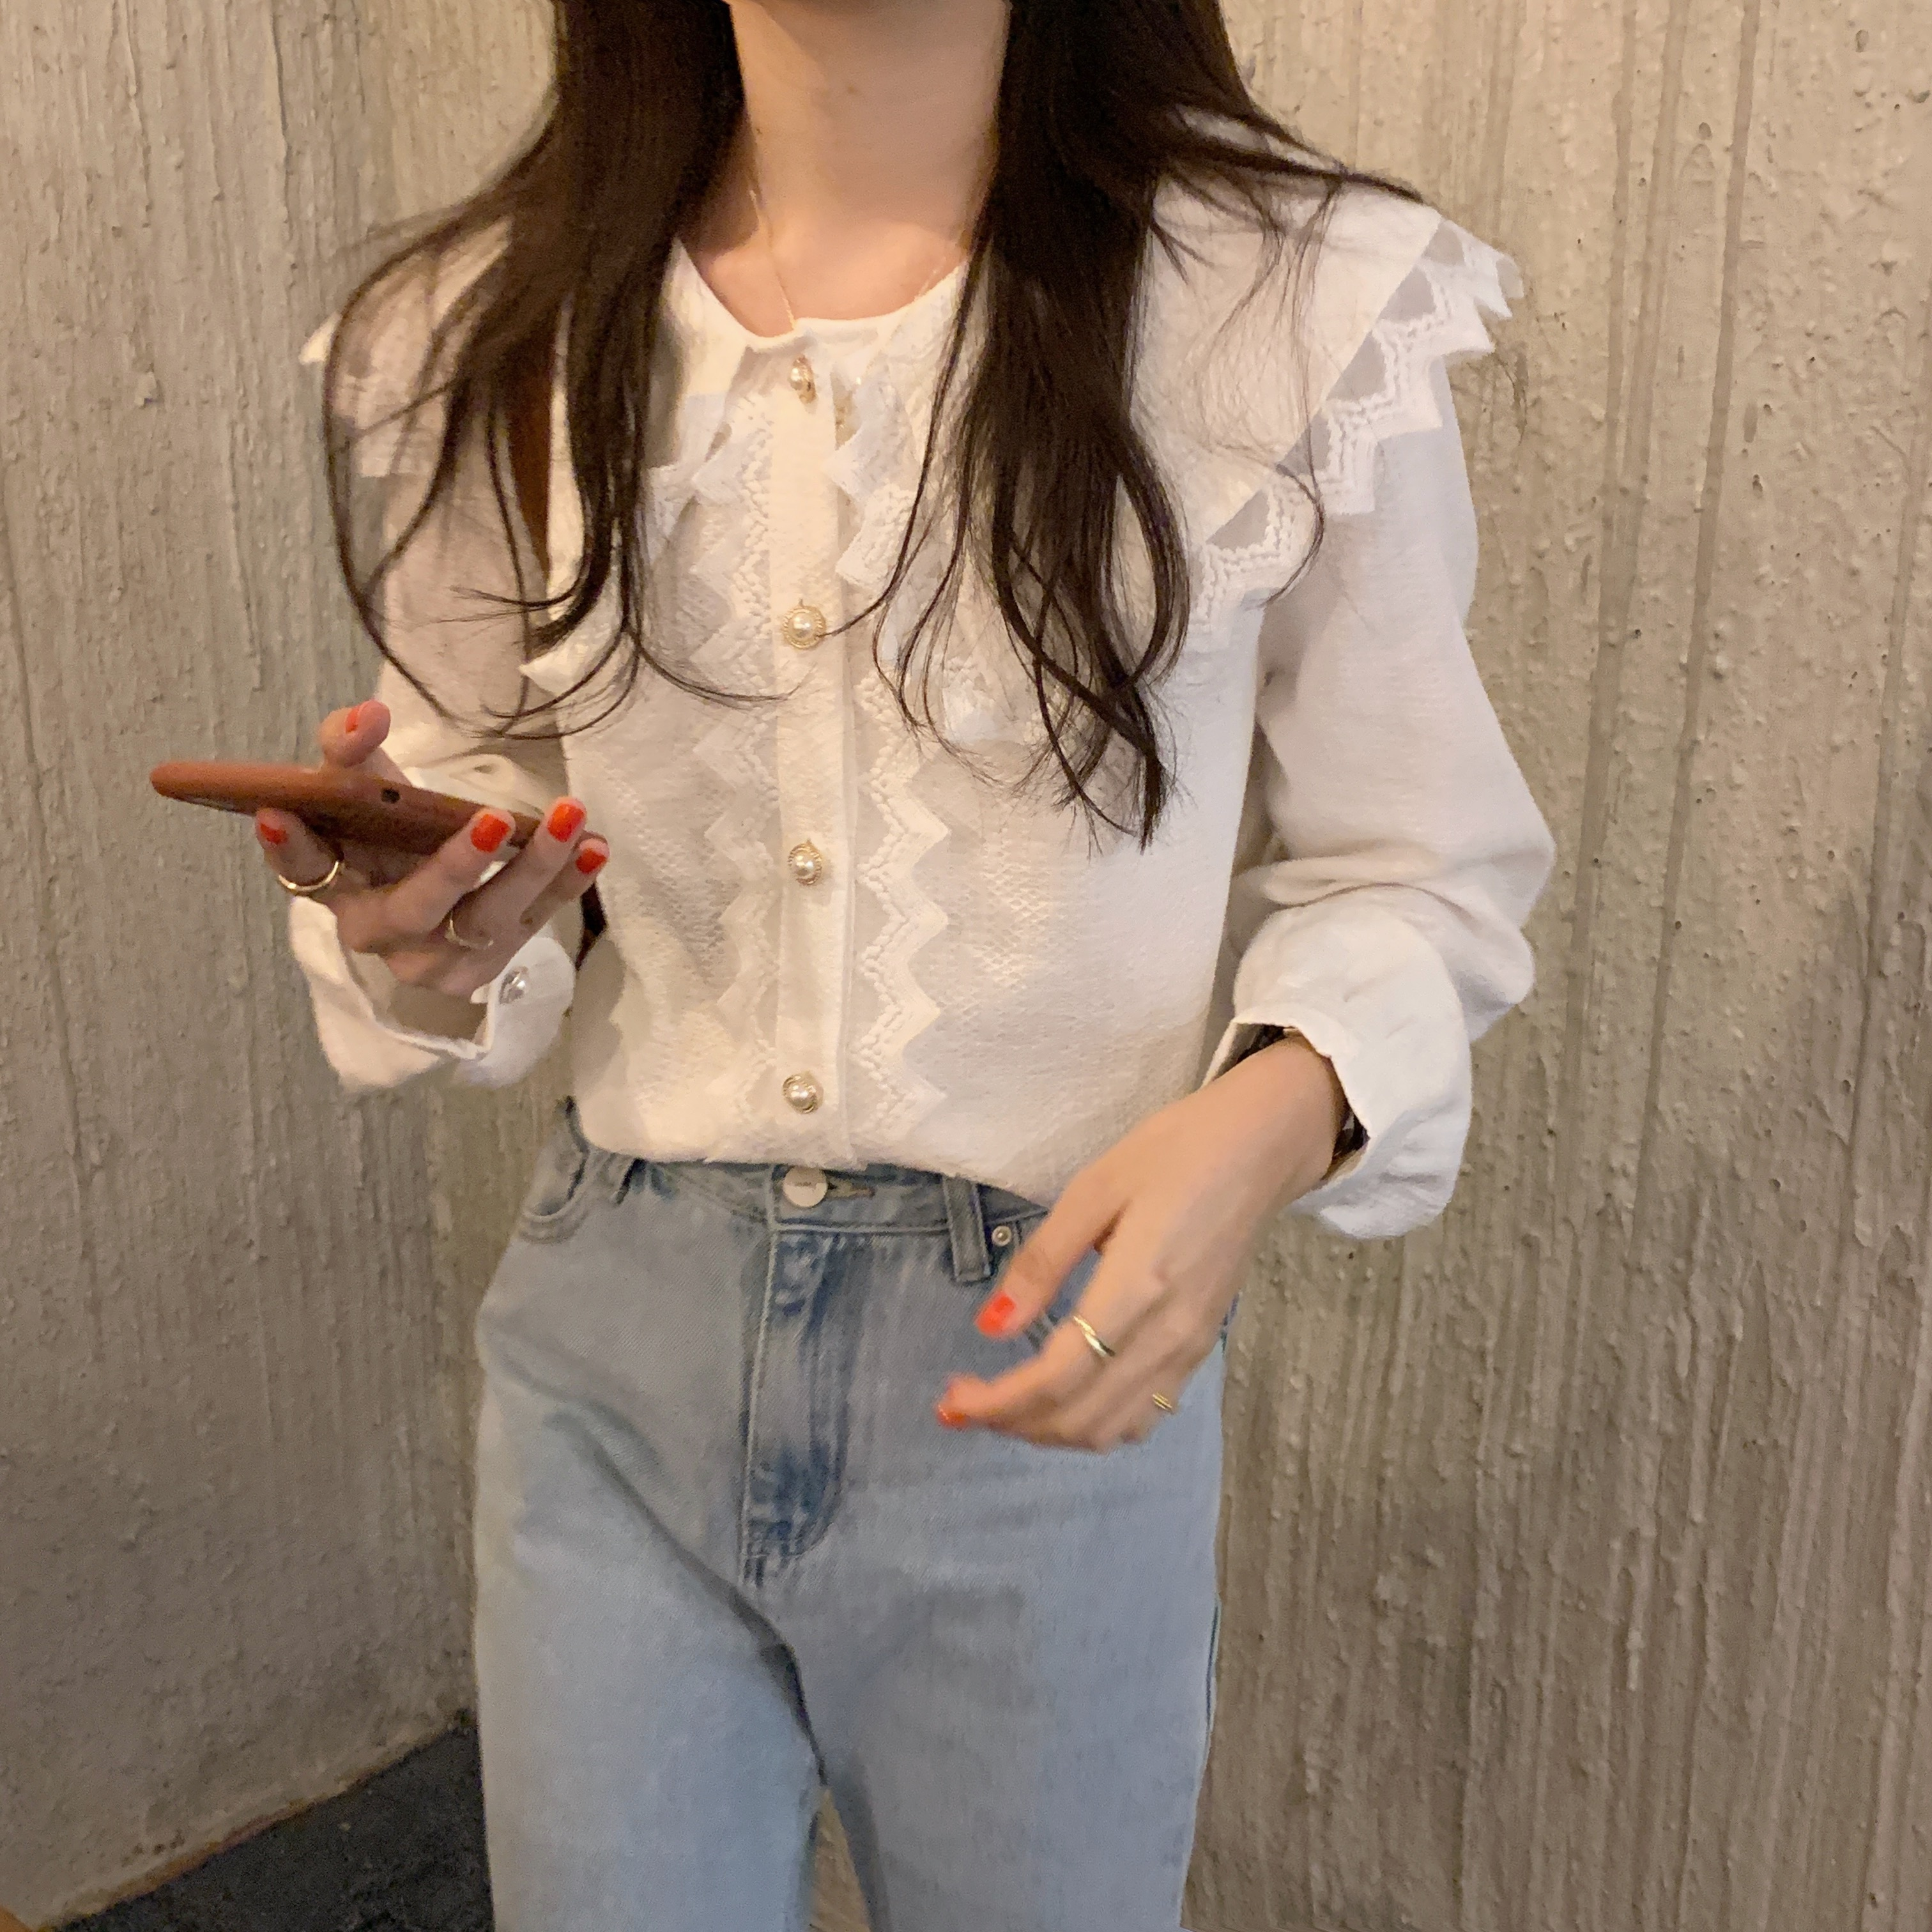 H1faf2c7e6b2f40c4826ce3617f6dca61C - Spring / Autumn Big Lapel Collar Long Sleeves Lace Buttons Solid Blouse